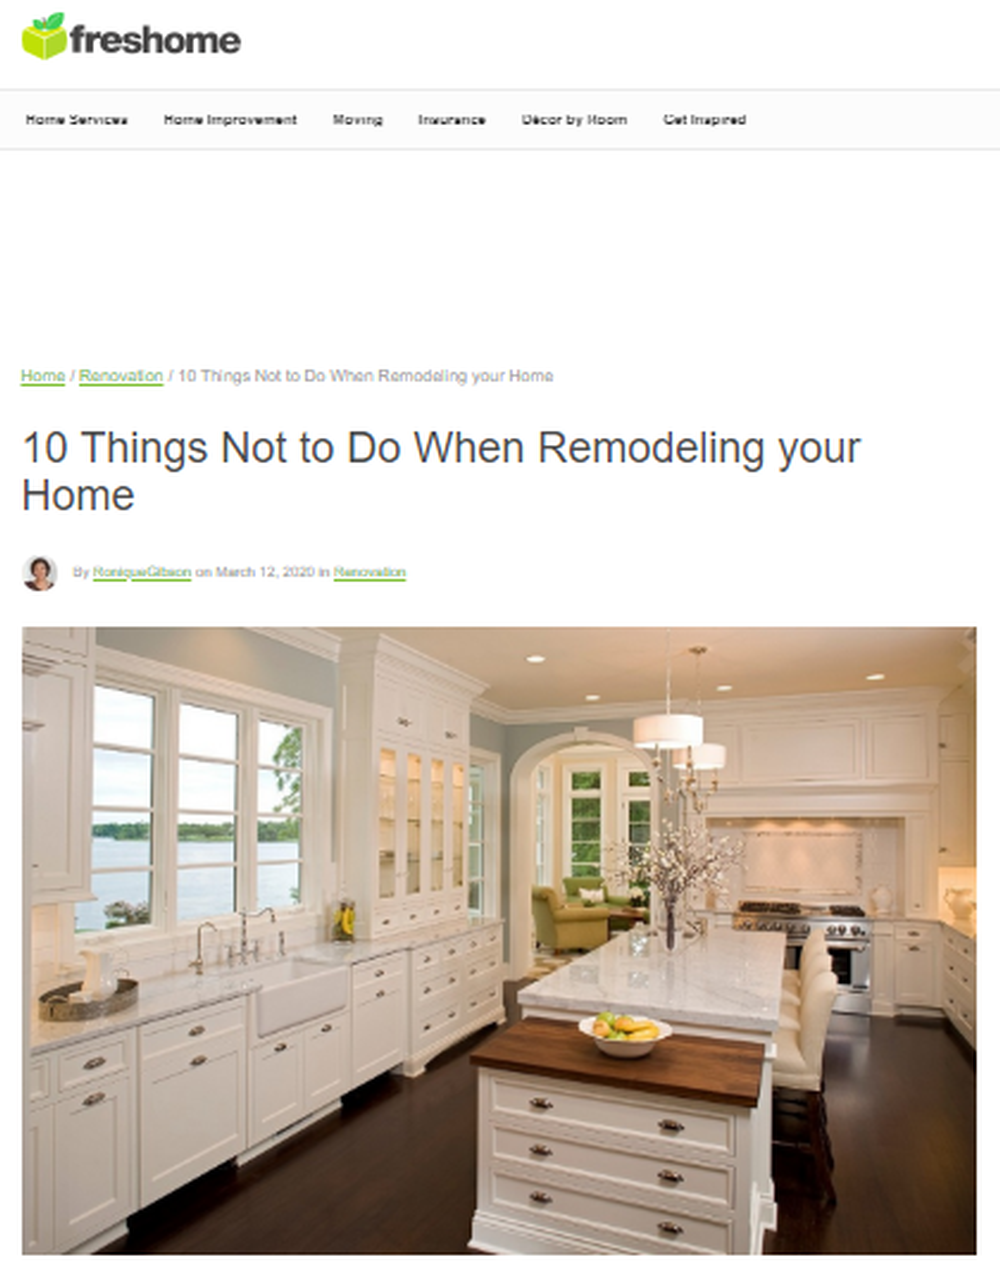 10 Things Not to Do When Remodeling your Home   Freshome com.png